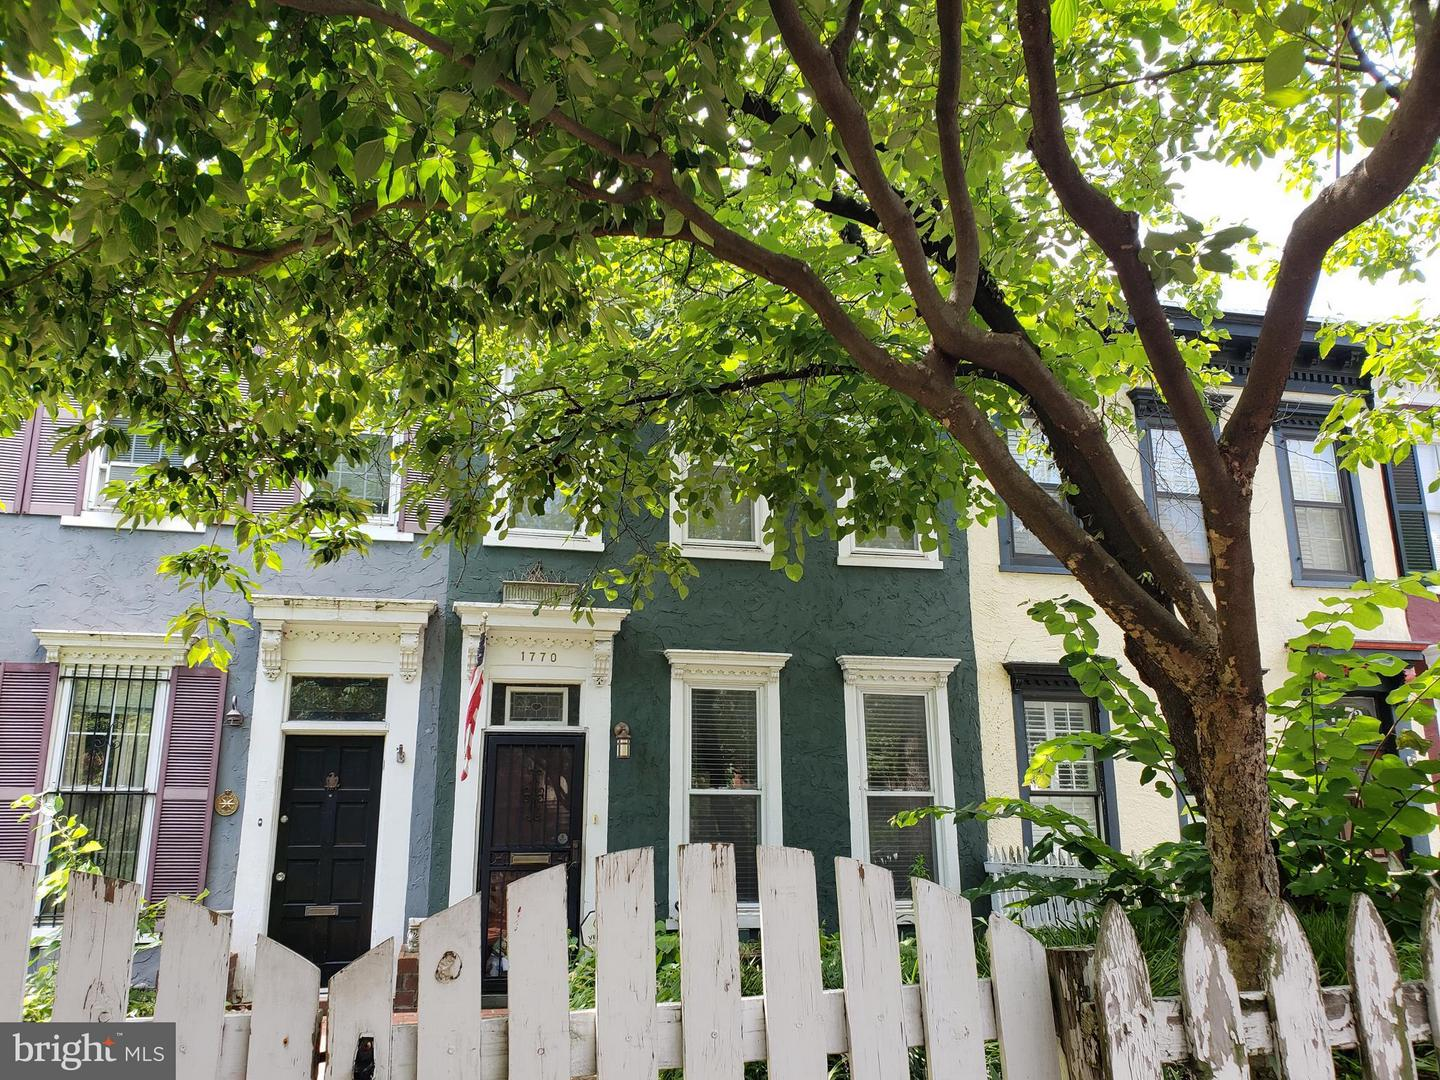 Single Family Home for Sale at 1770 T St Nw 1770 T St Nw Washington, District Of Columbia 20009 United States